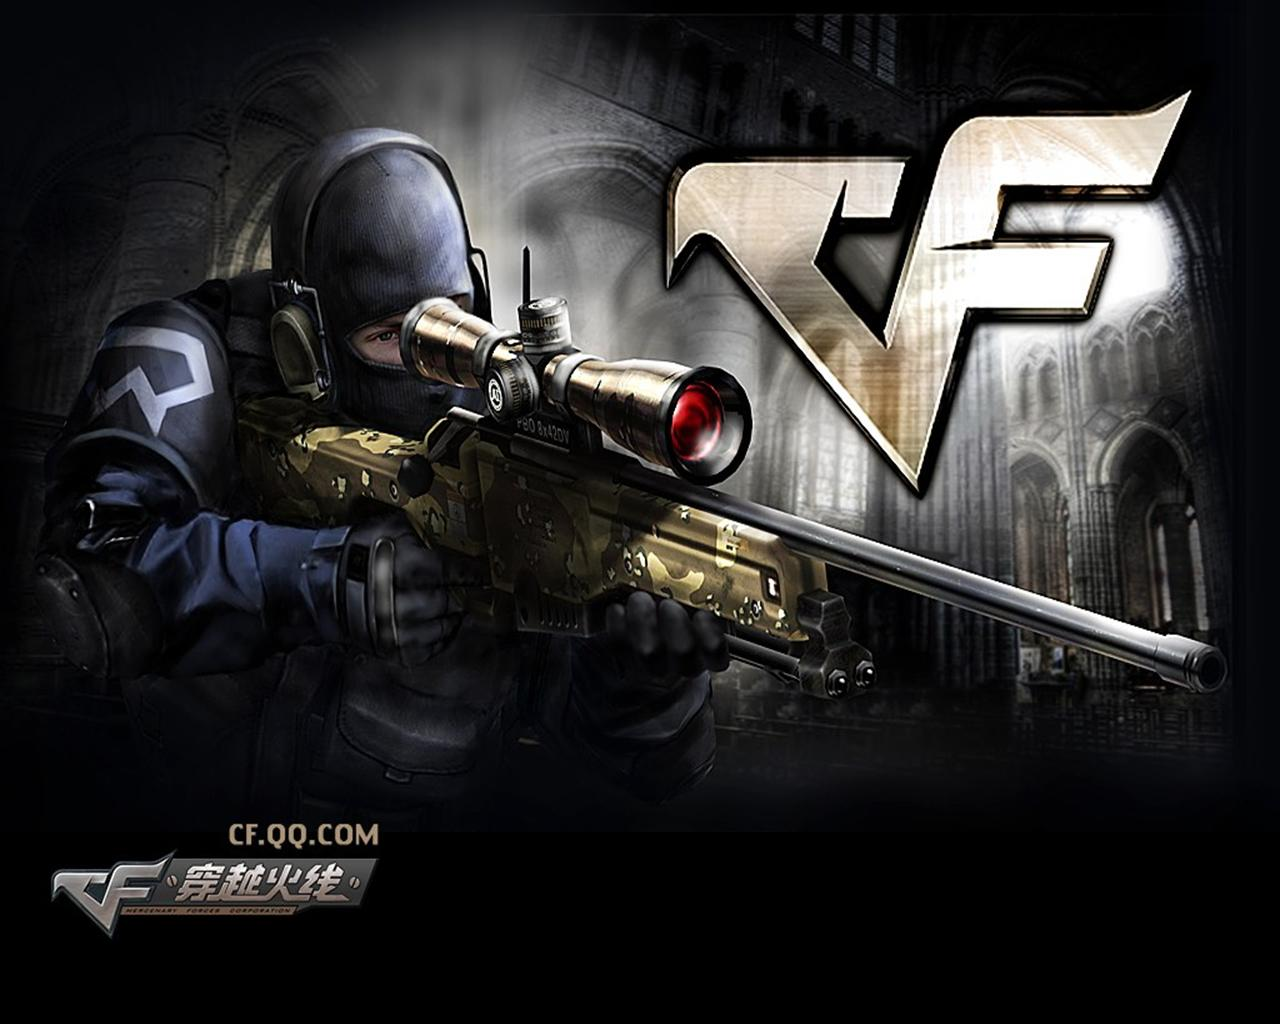 World e-sports. : crossfire game download,crossfire gameclub.